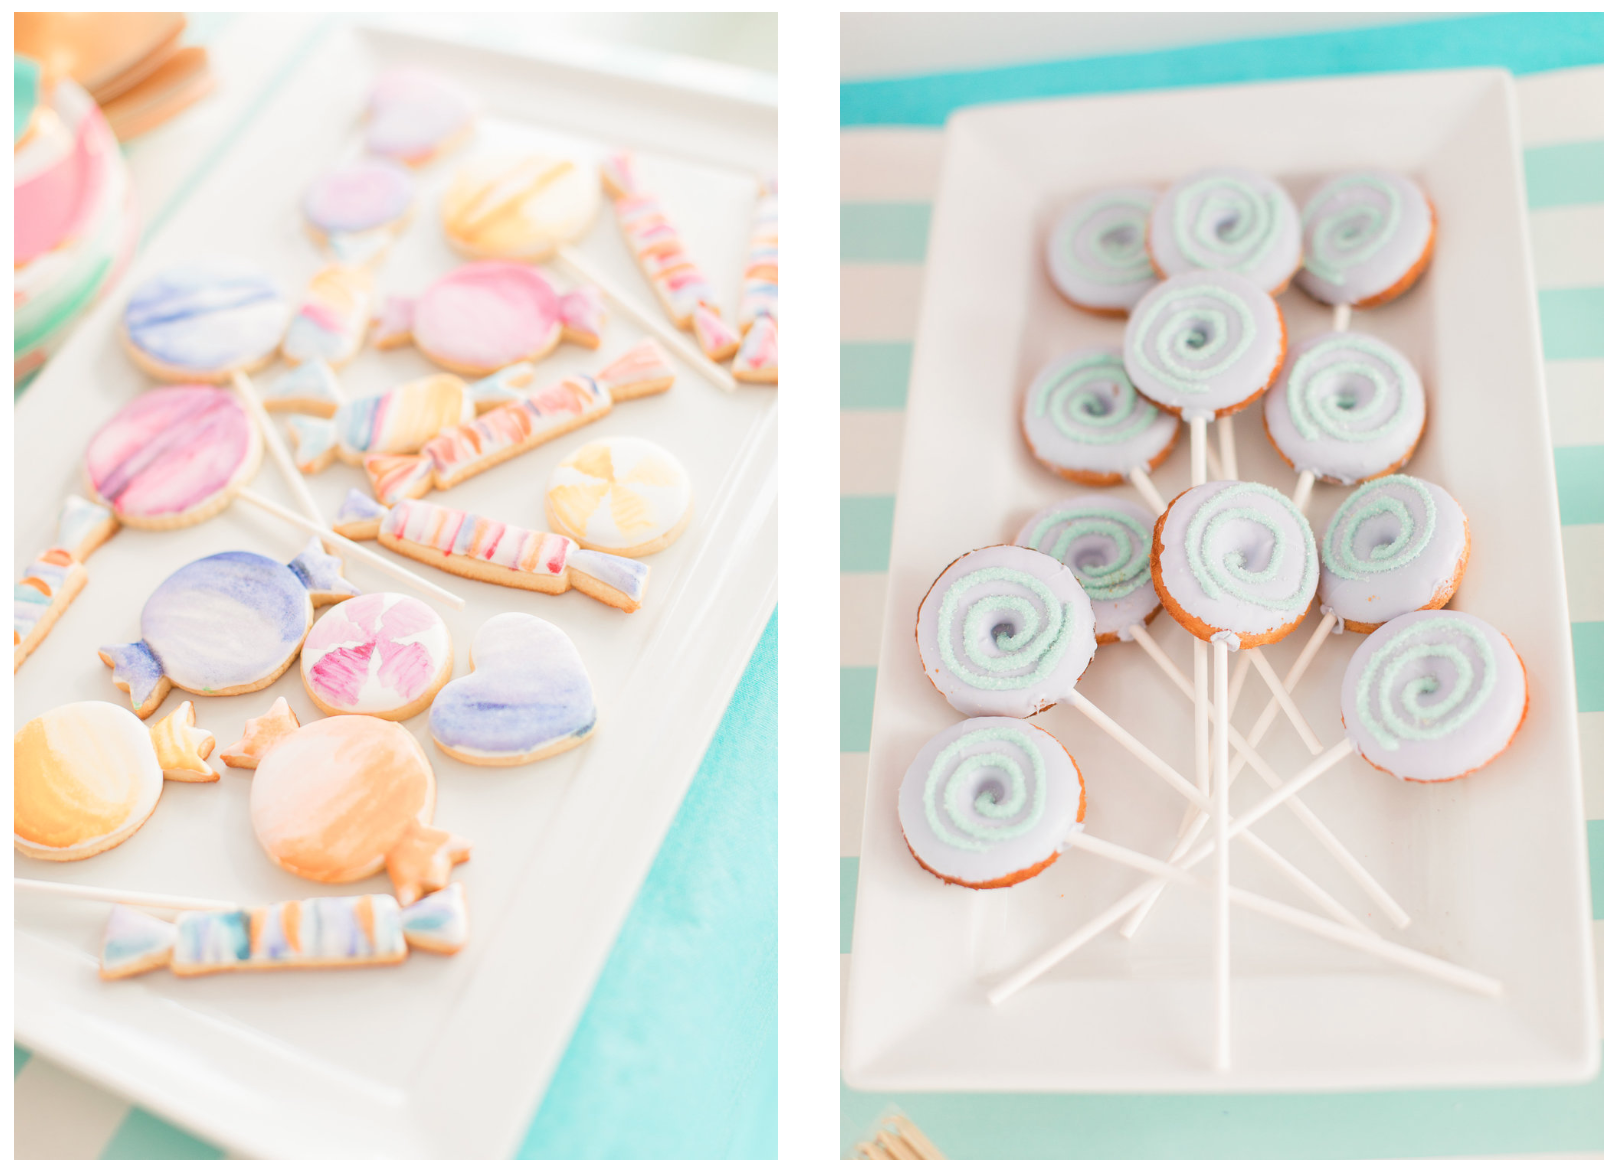 Candy-themed birthday party from Cake and Confetti . Image: The Cotton Collective | Party Planning Blogs That Will Inspire you from LYFETYMES party planning blog.